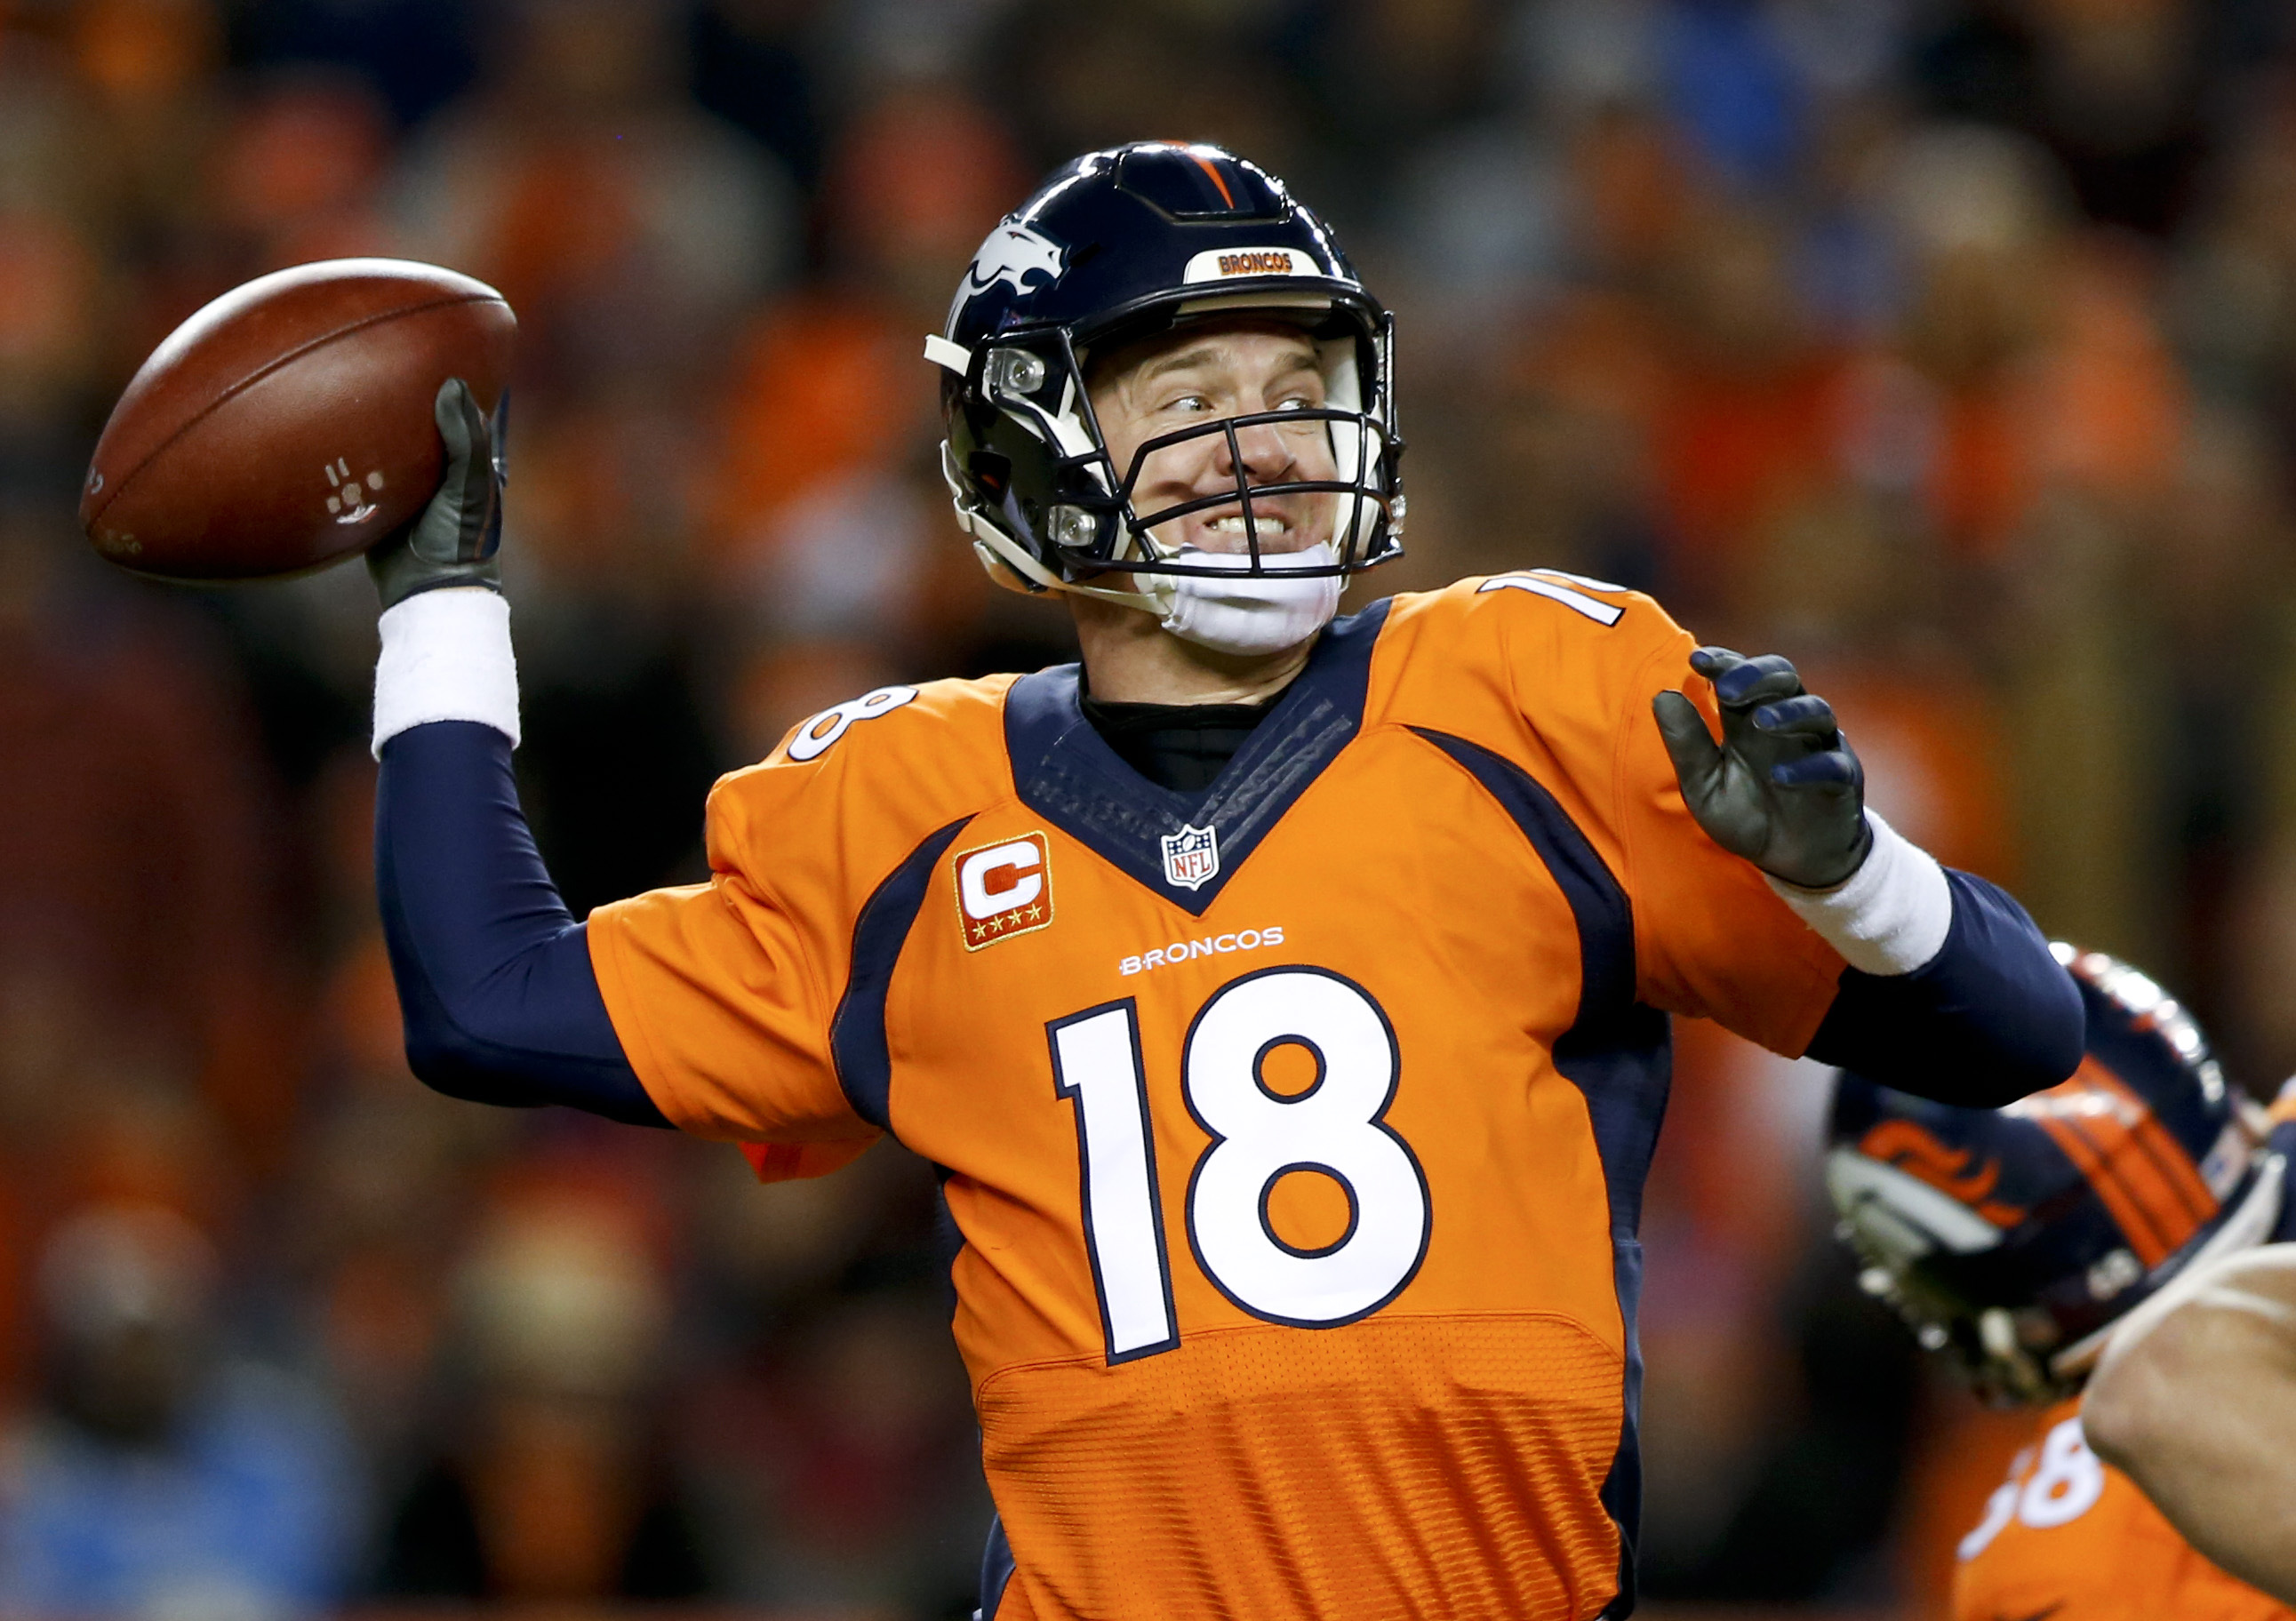 In this Sunday, Jan. 3, 2016, photograph, Denver Broncos quarterback Peyton Manning passes against the San Diego Chargers during the second half of an NFL football game in Denver. Who will start for the Broncos in the Jan. 17 divisional playoff game?  (AP